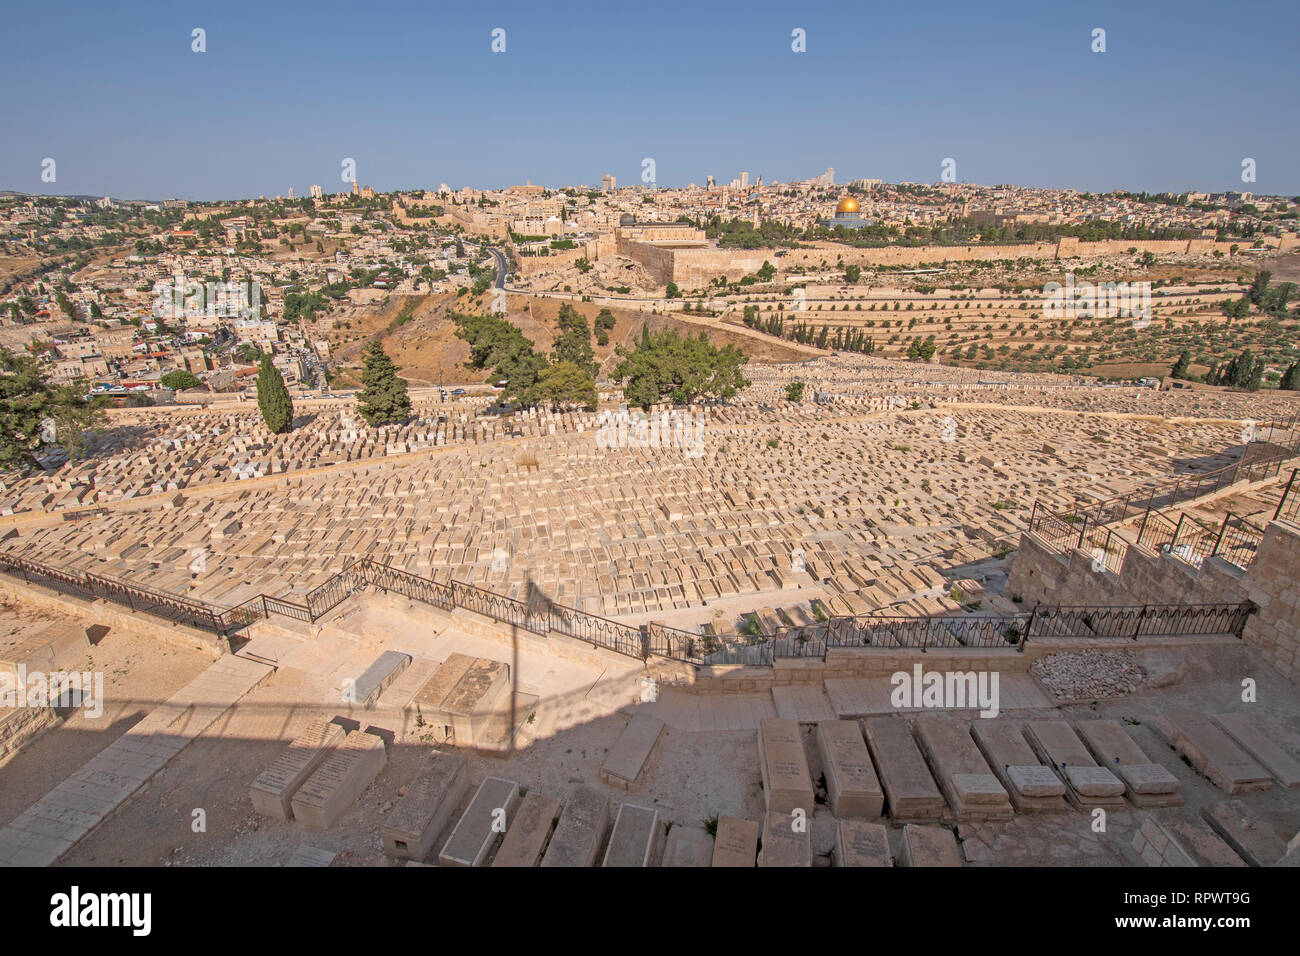 Yeusafiya Cemetery below the Garden of Gethsemane and across from Jerusalem in Israel Stock Photo